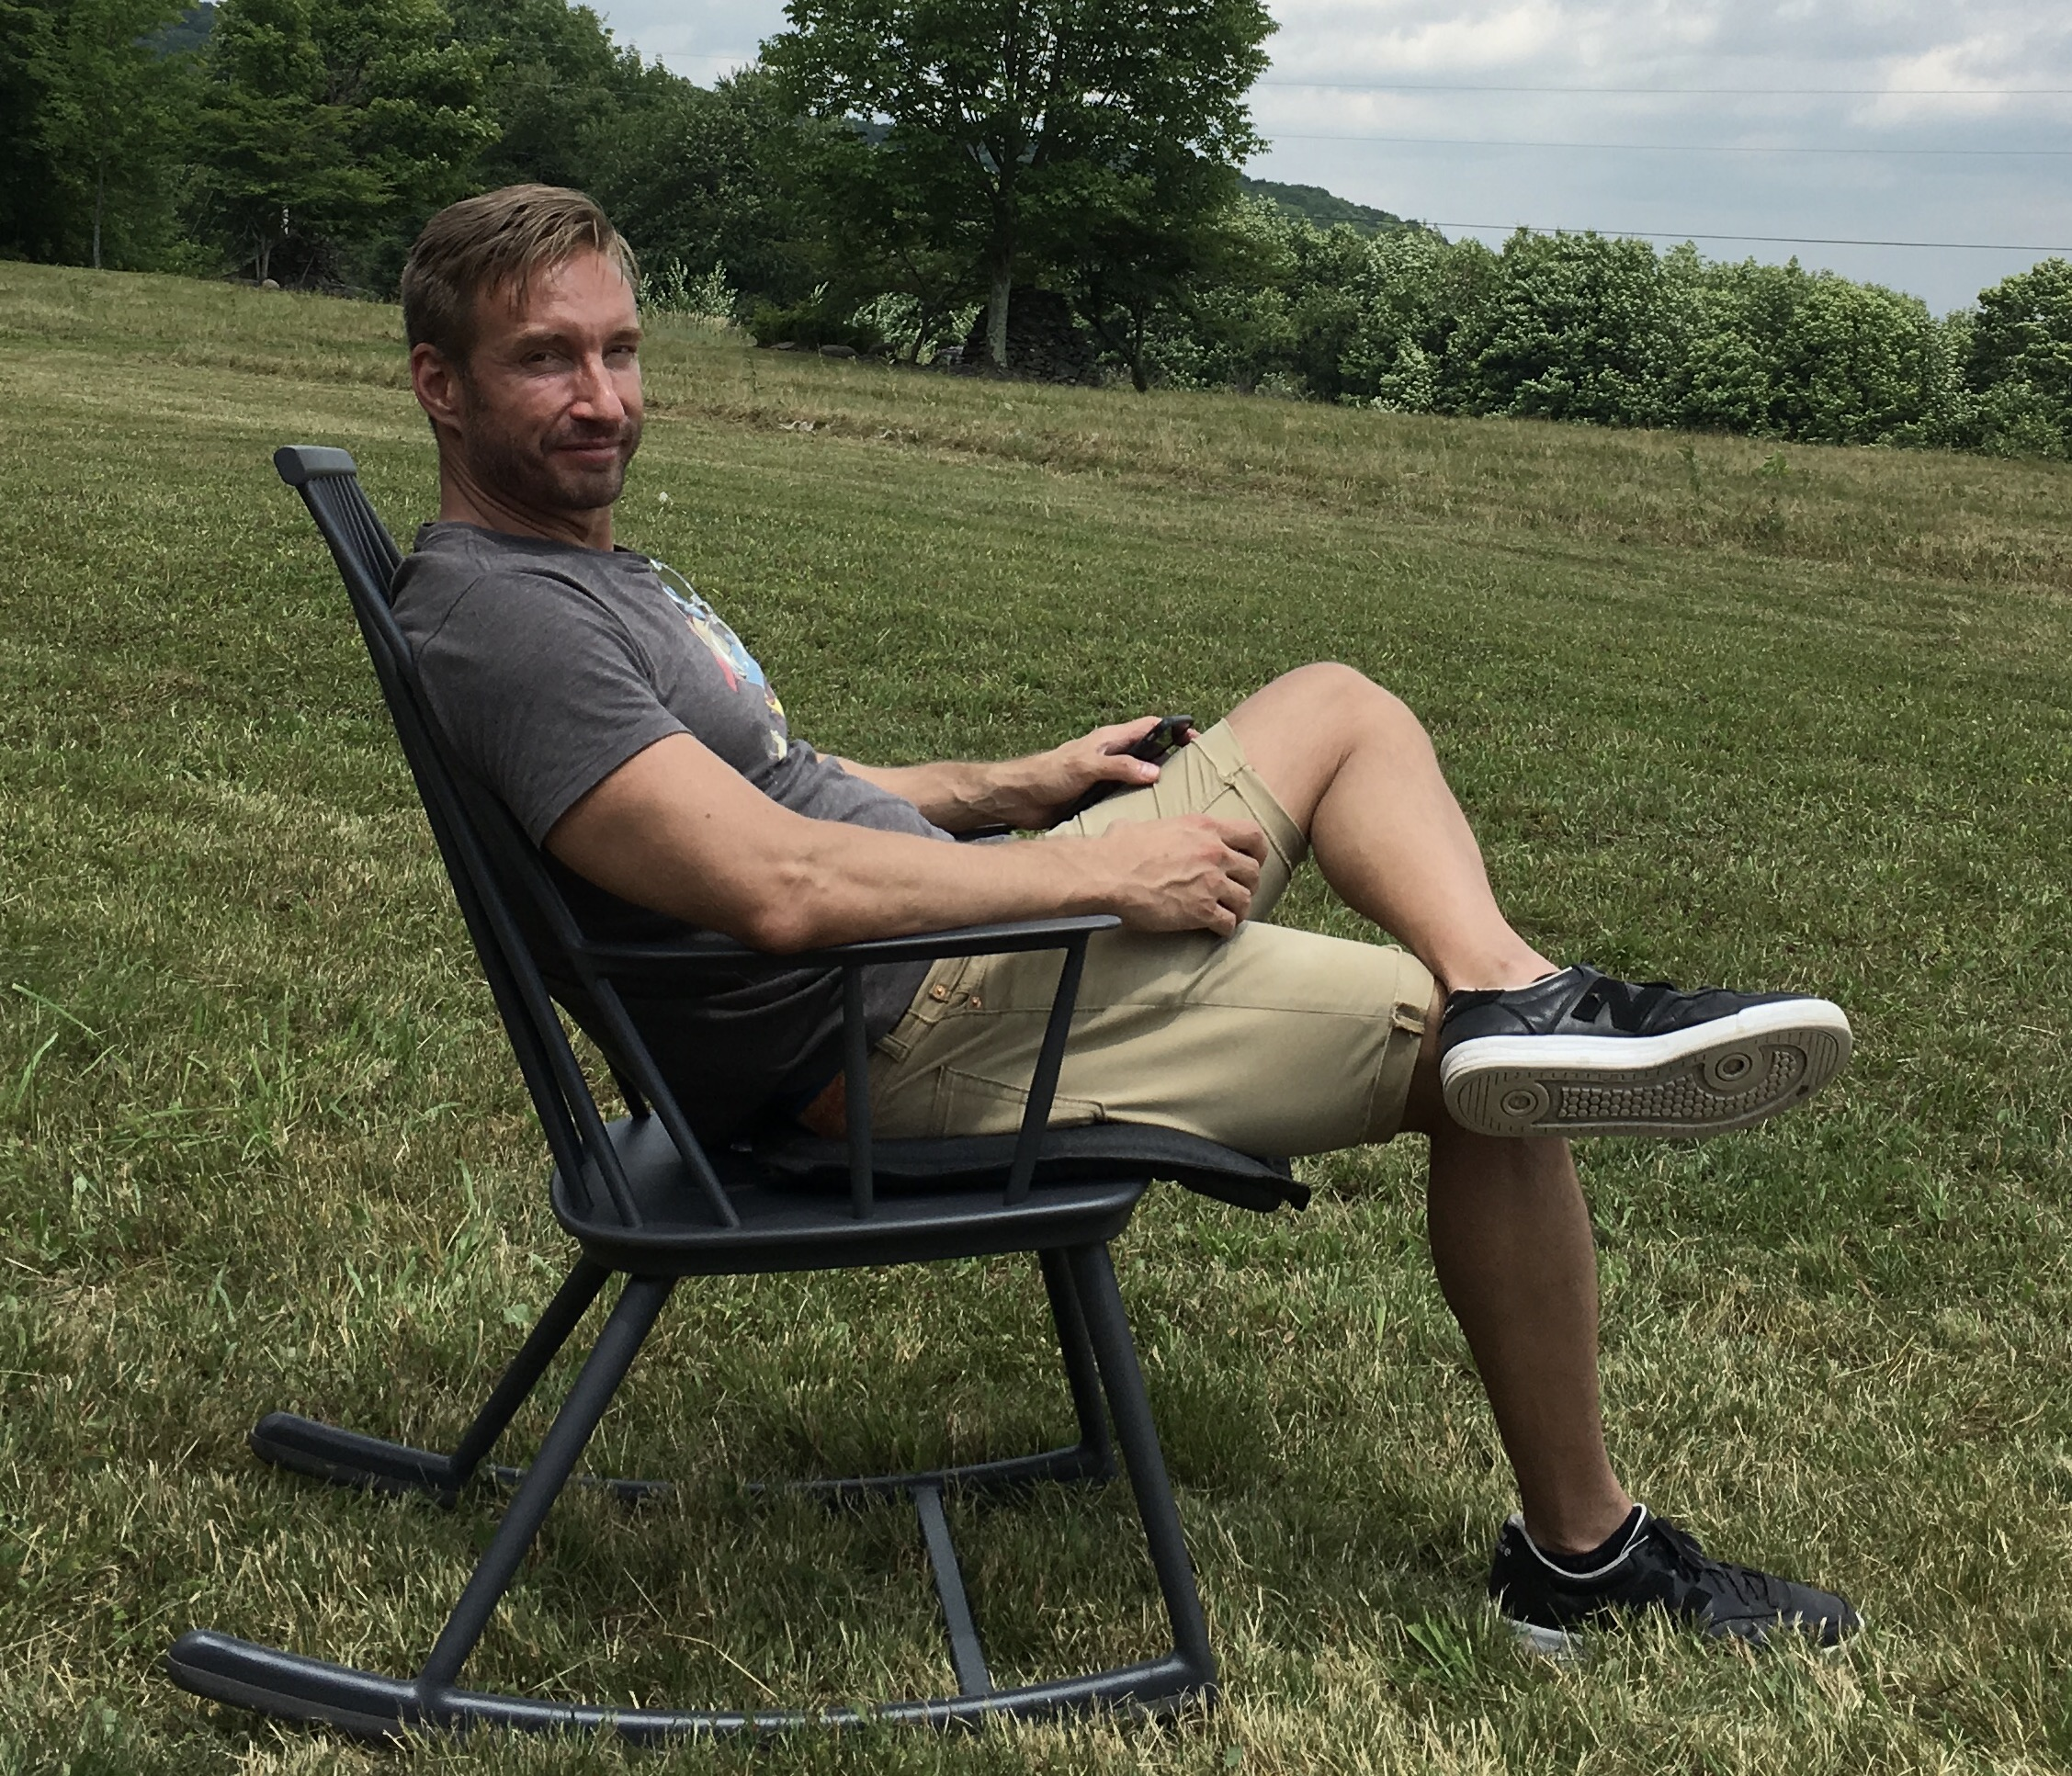 Chris Schaldenbrand, looking particularly relaxed in this photo.